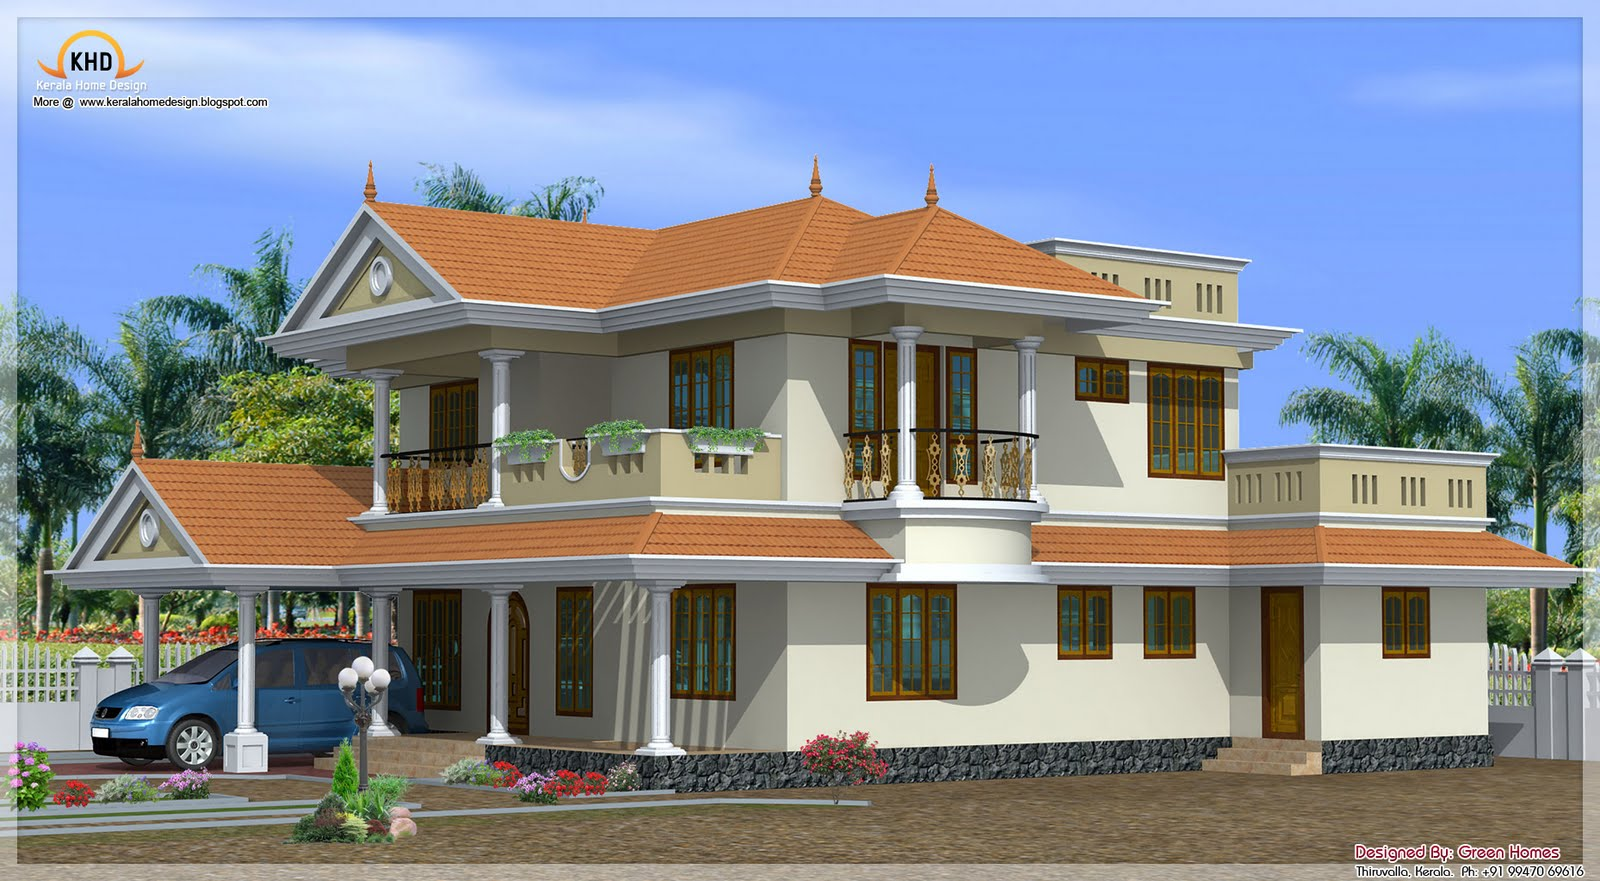 Indian home design indian home decor for Indian house image